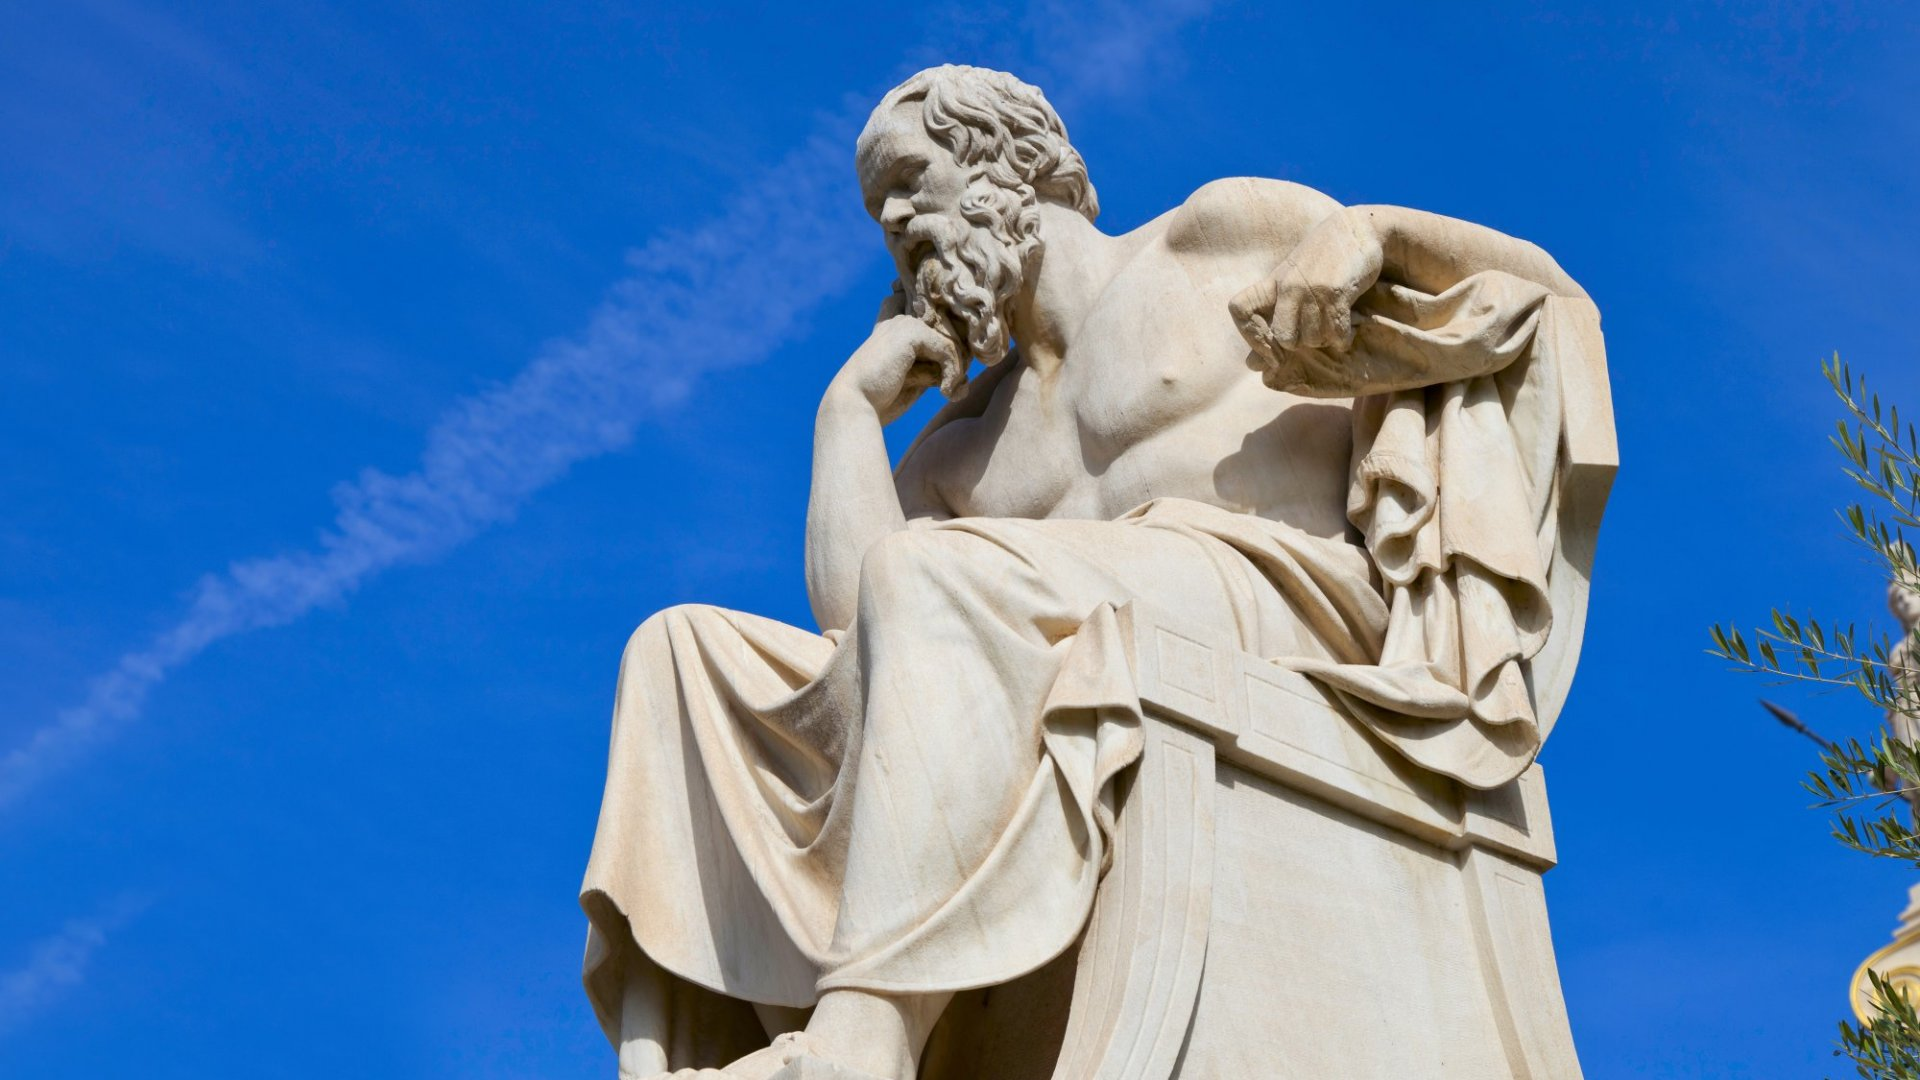 50 Quotes From Ancient Philosophers to Inspire You Past Every Business Hurdle